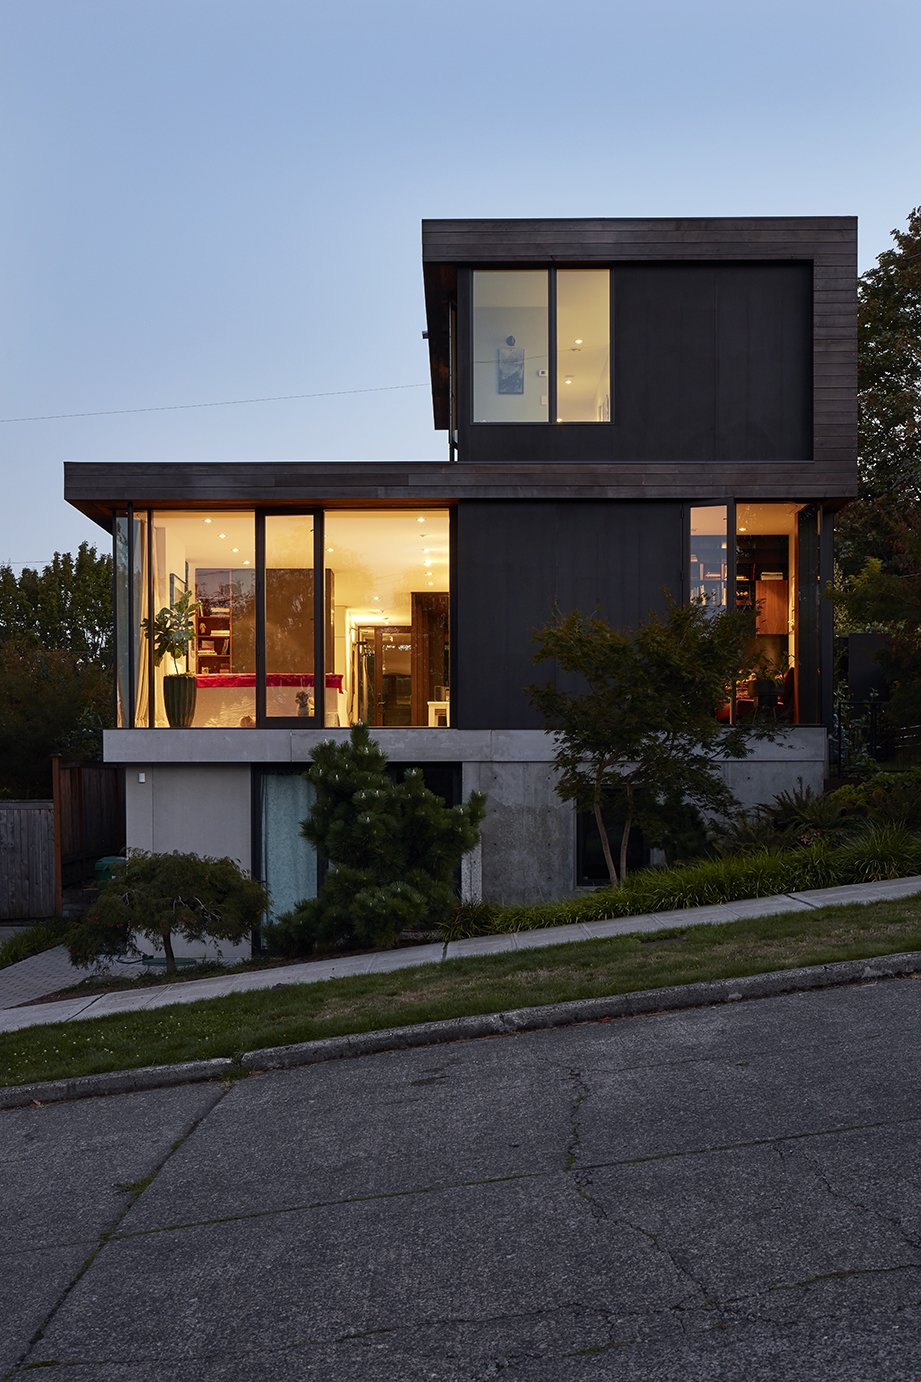 The structure is sited on a slope that dips to the east, allowing for a generous basement that Ian uses for his business, Treebird Construction. Tagged: Exterior, Wood Siding Material, Stucco Siding Material, and House.  Photo 12 of 15 in Greener Grass